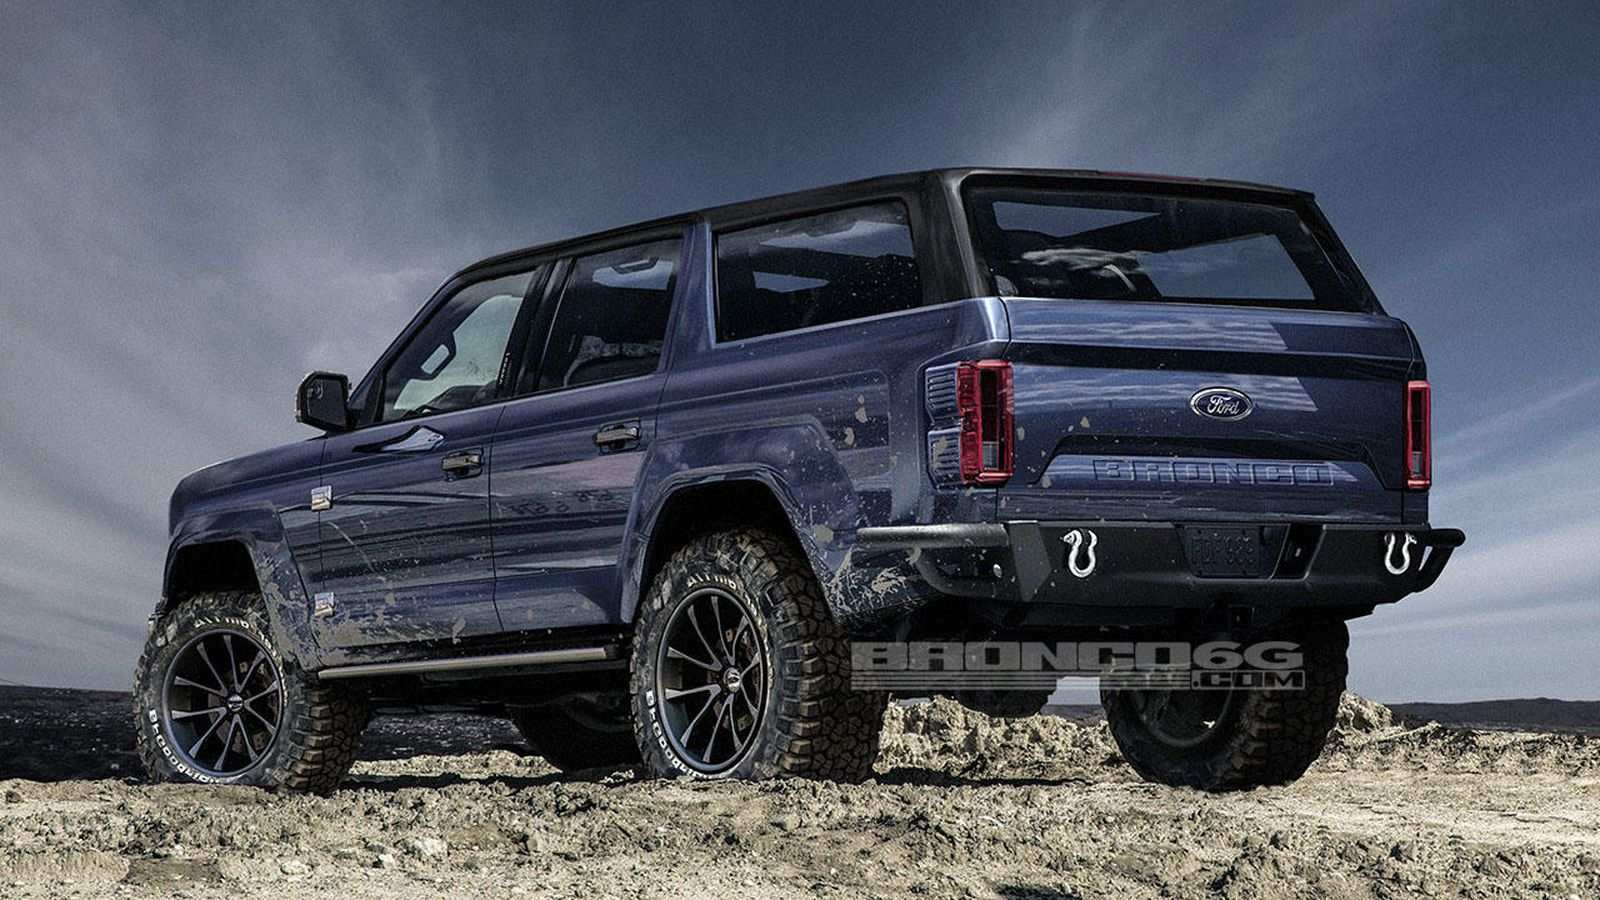 83 All New 2020 Ford Bronco Order Overview for 2020 Ford Bronco Order